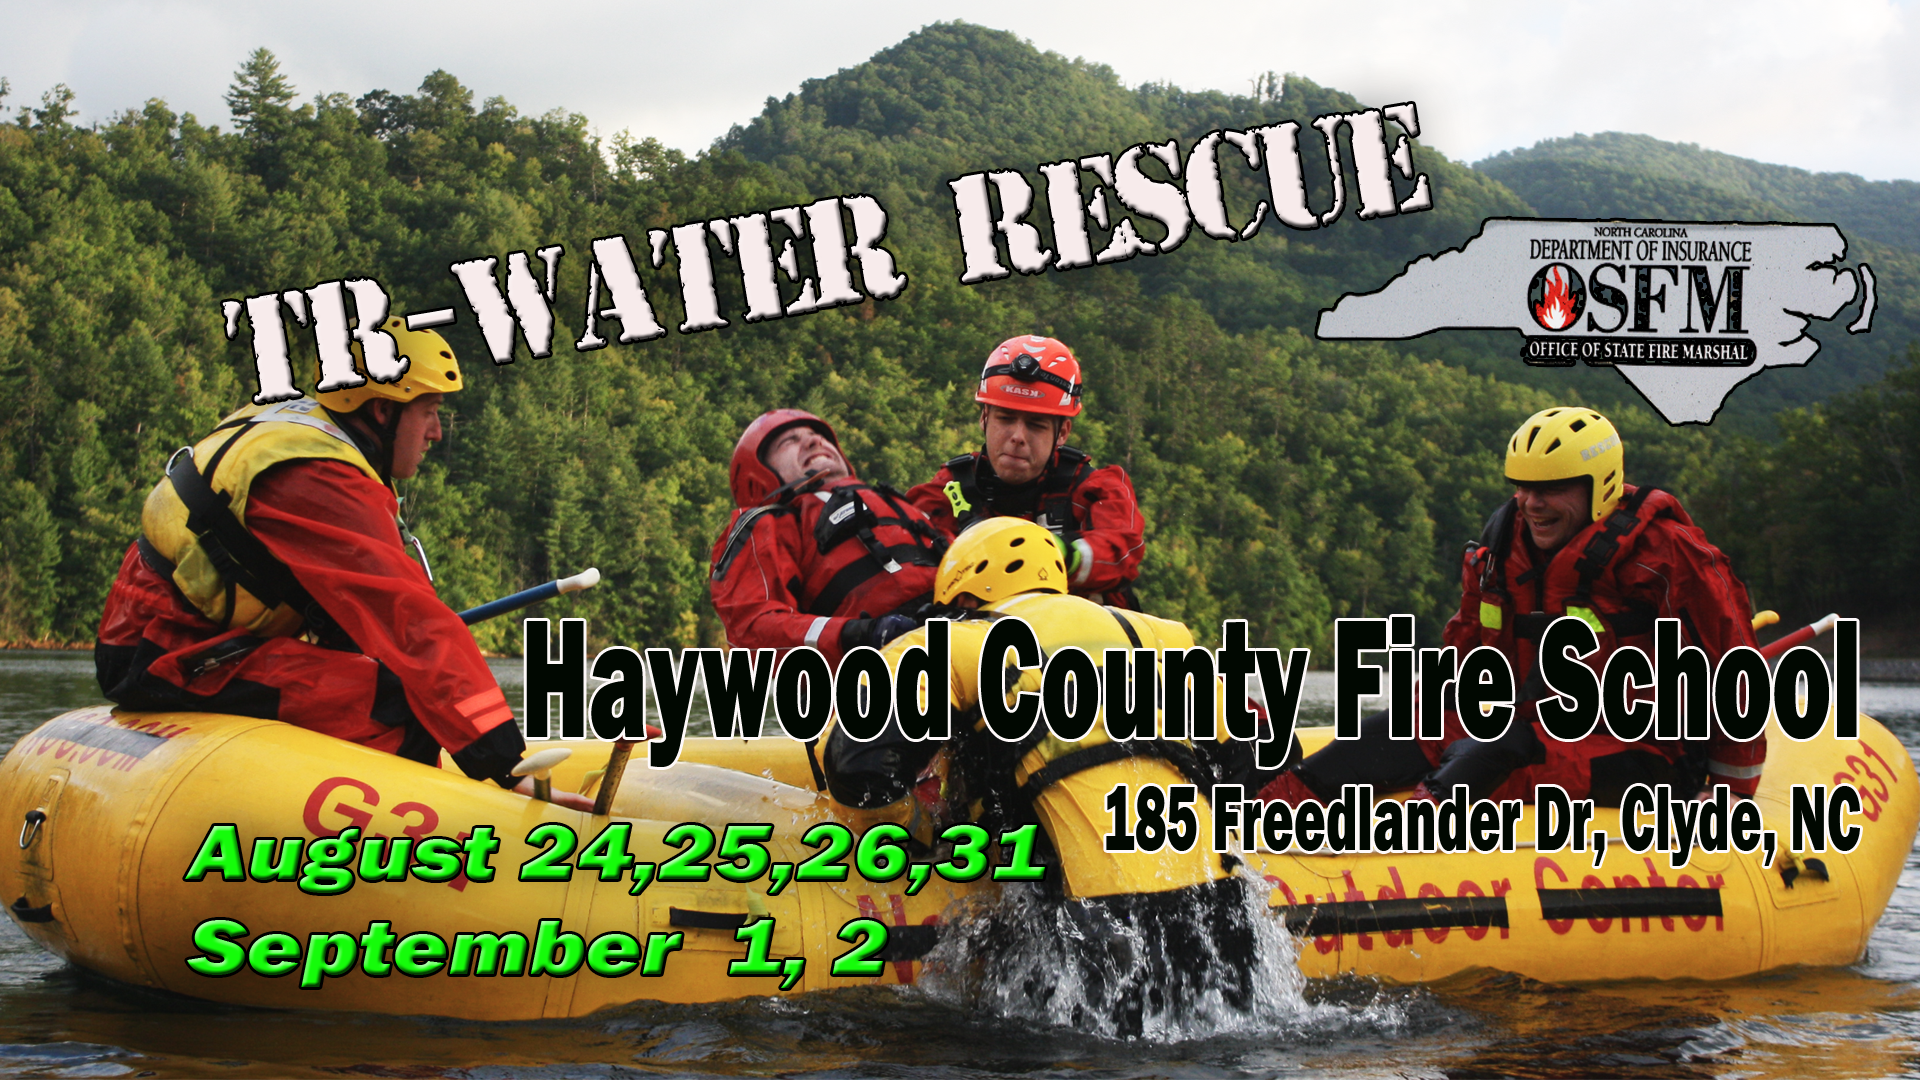 2018 TR Water Rescue Haywood